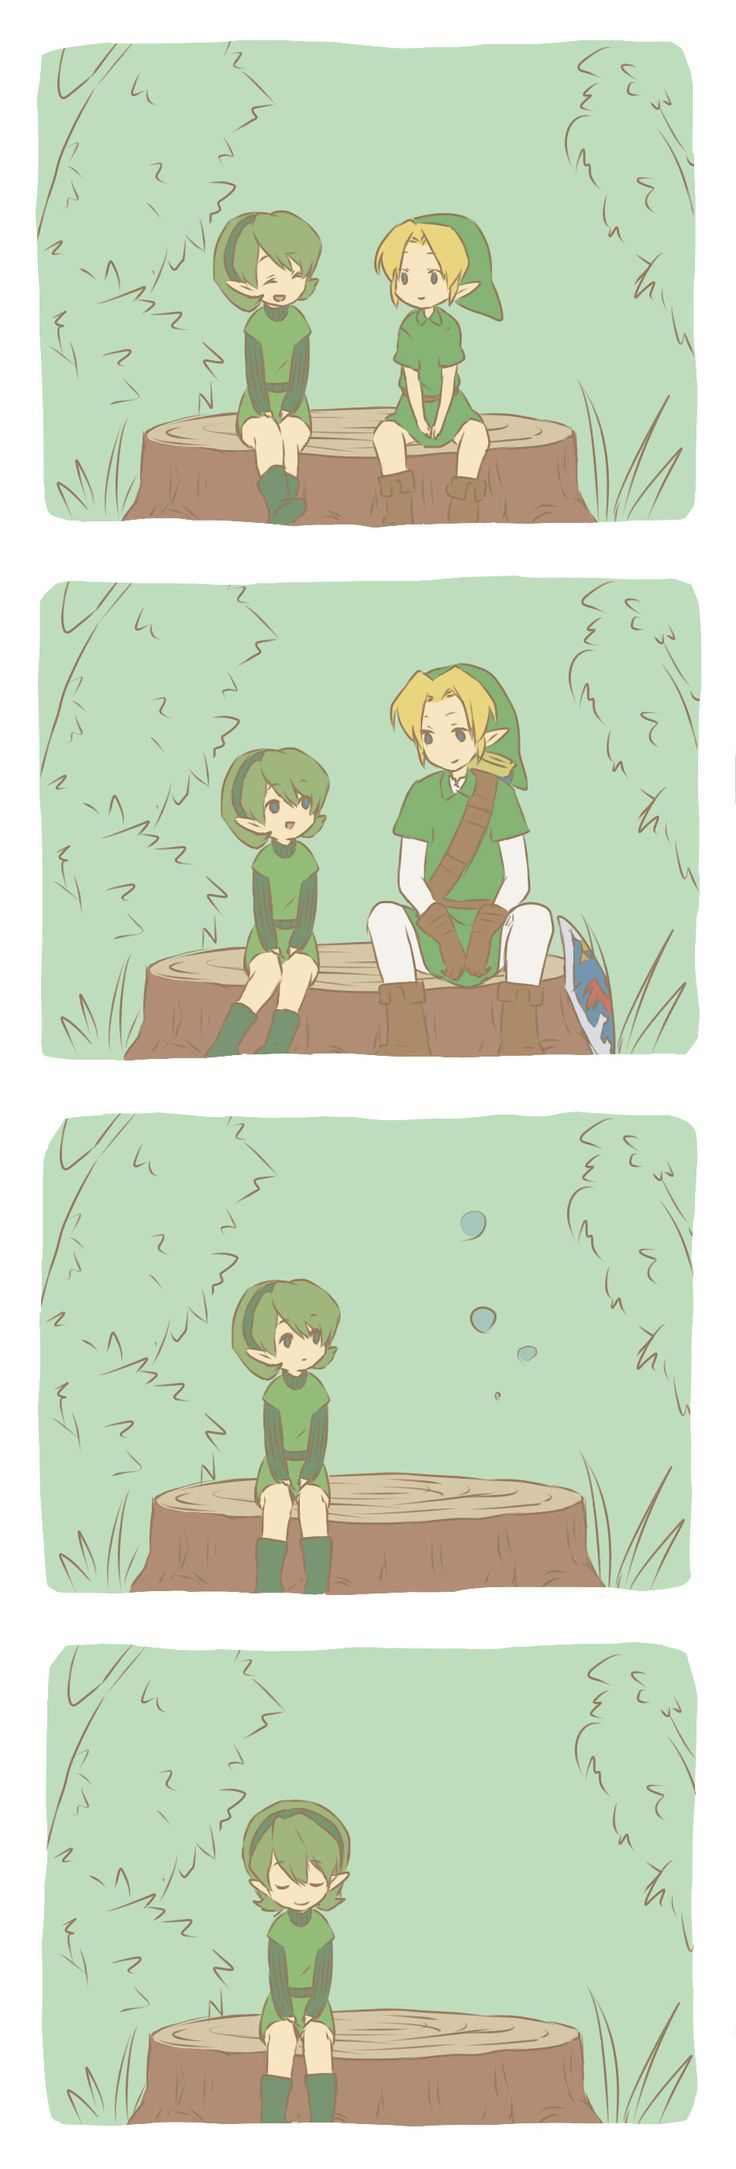 /Ocarina of Time/#1057925 - Zerochan | The Legend of Zelda: Ocarina of Time, Link and Saria